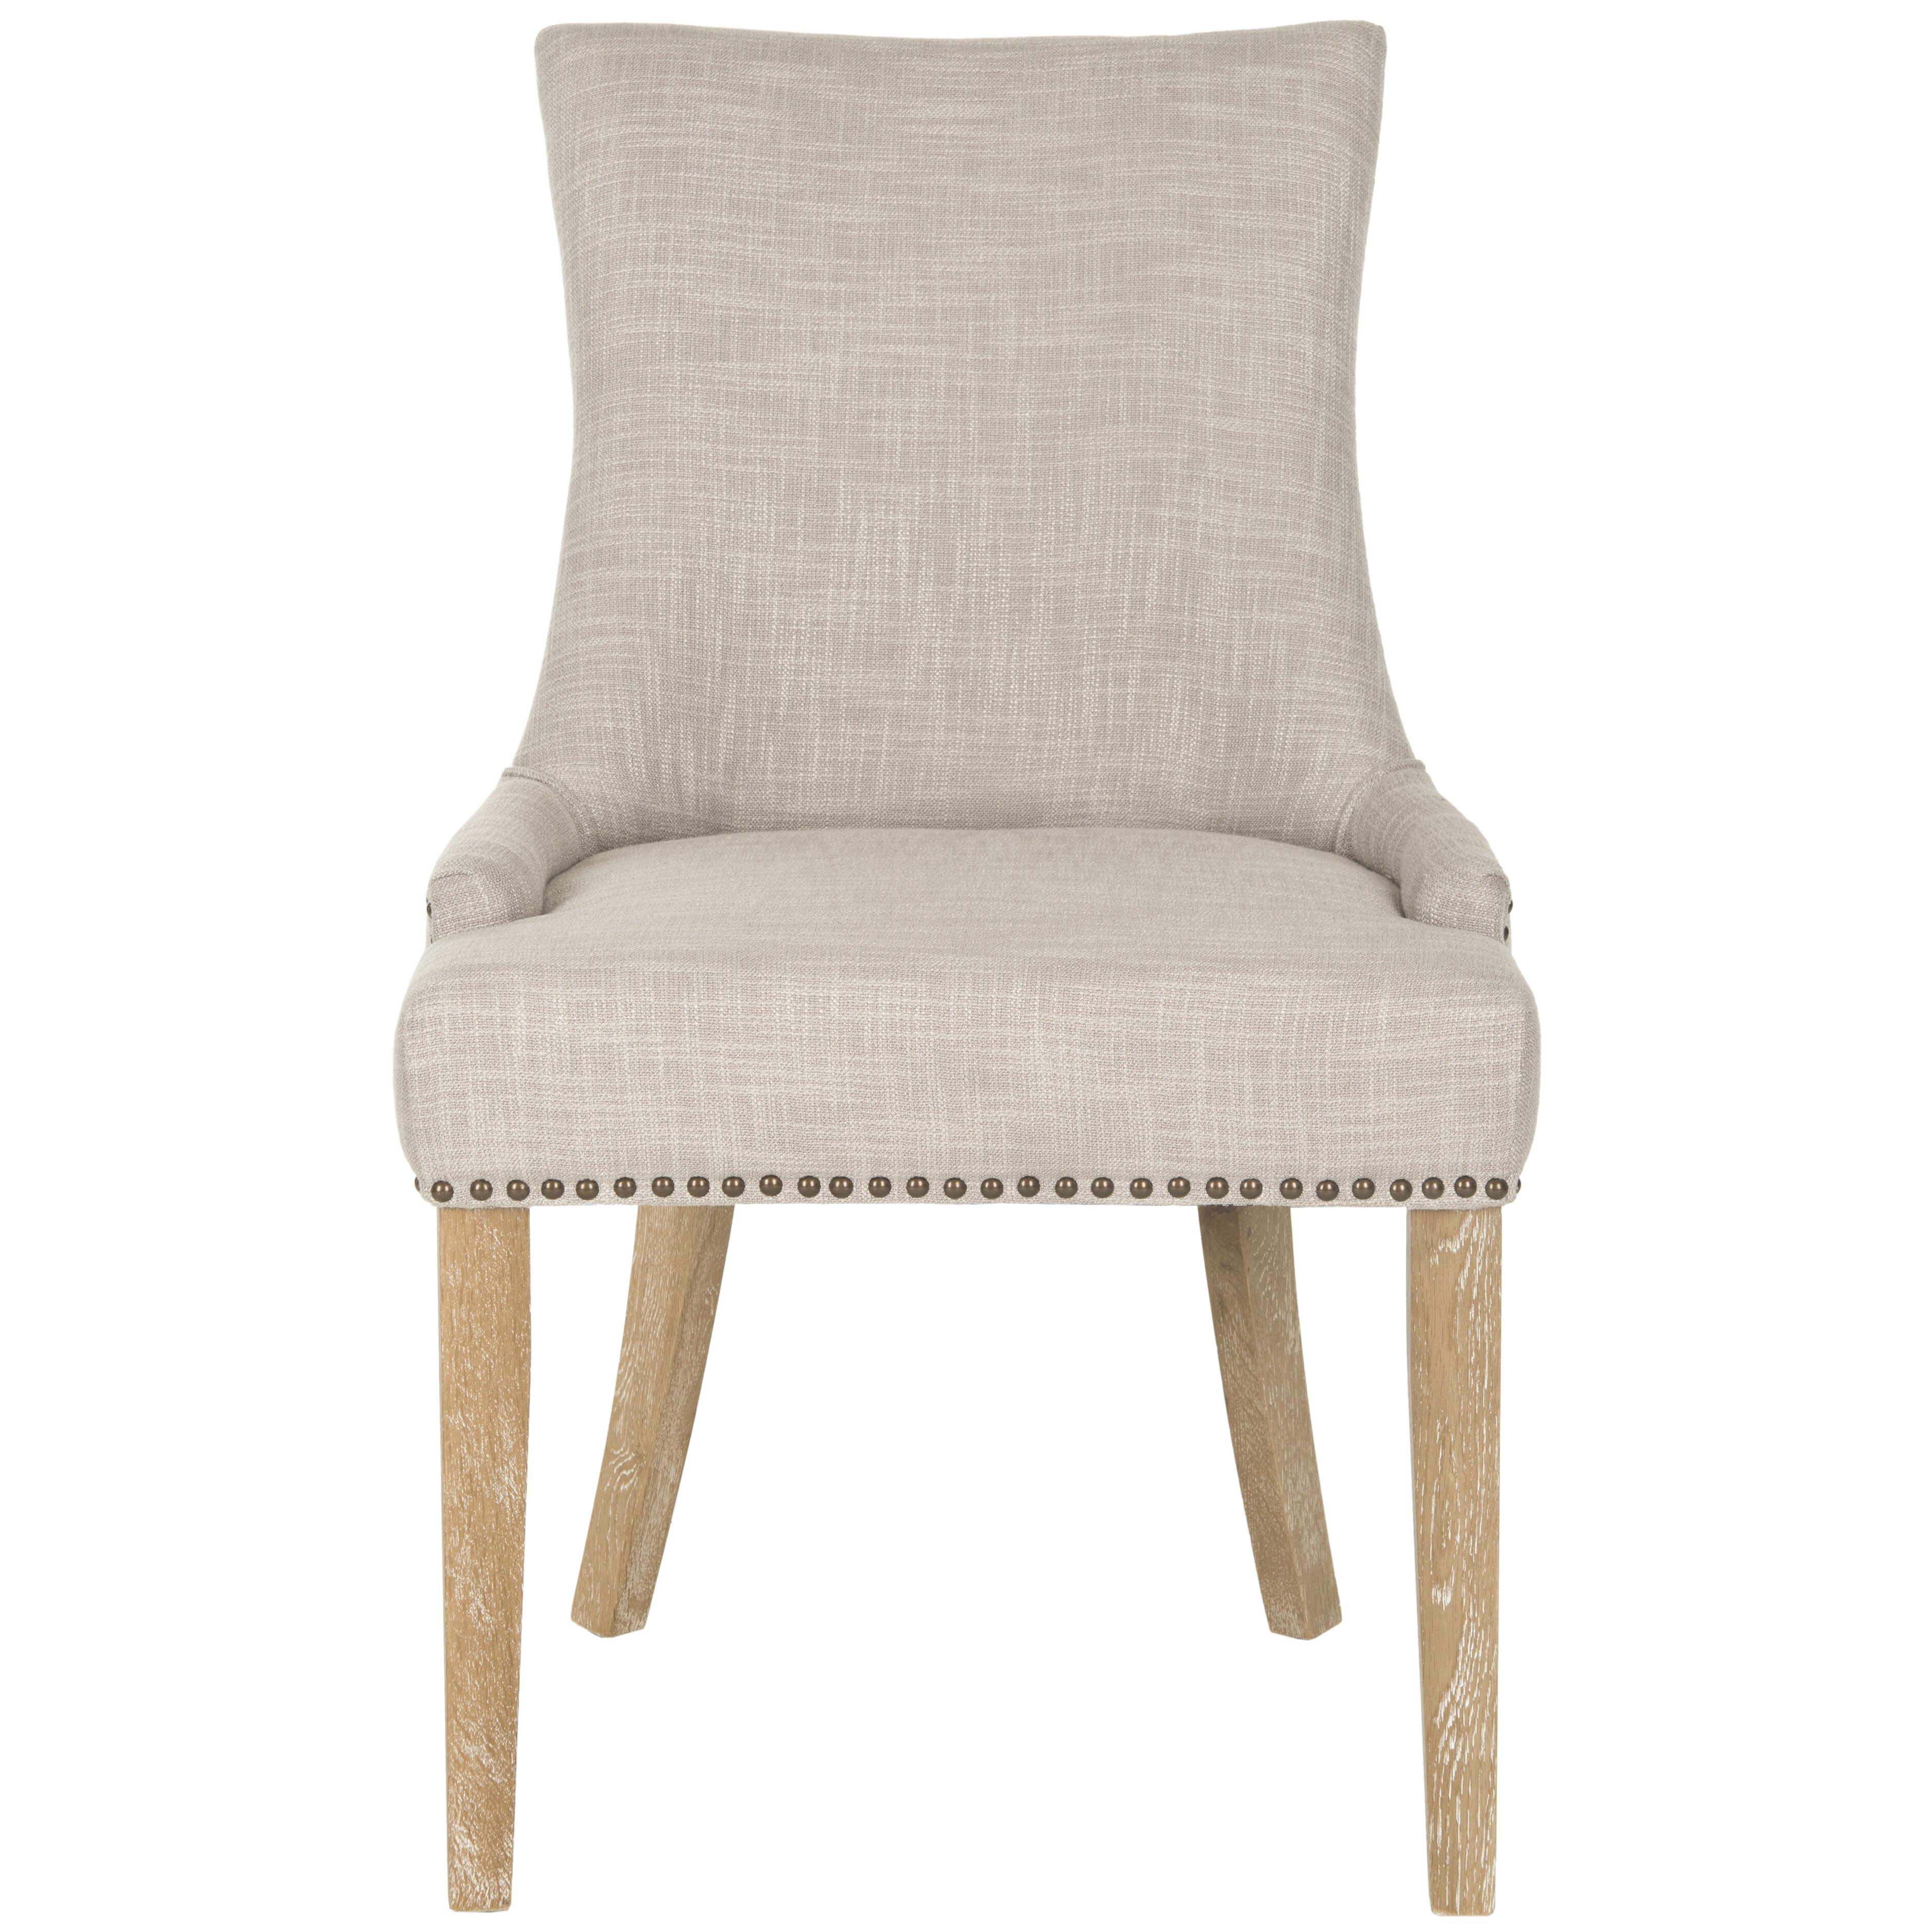 Safavieh Lester Parsons Chair & Reviews  Wayfair